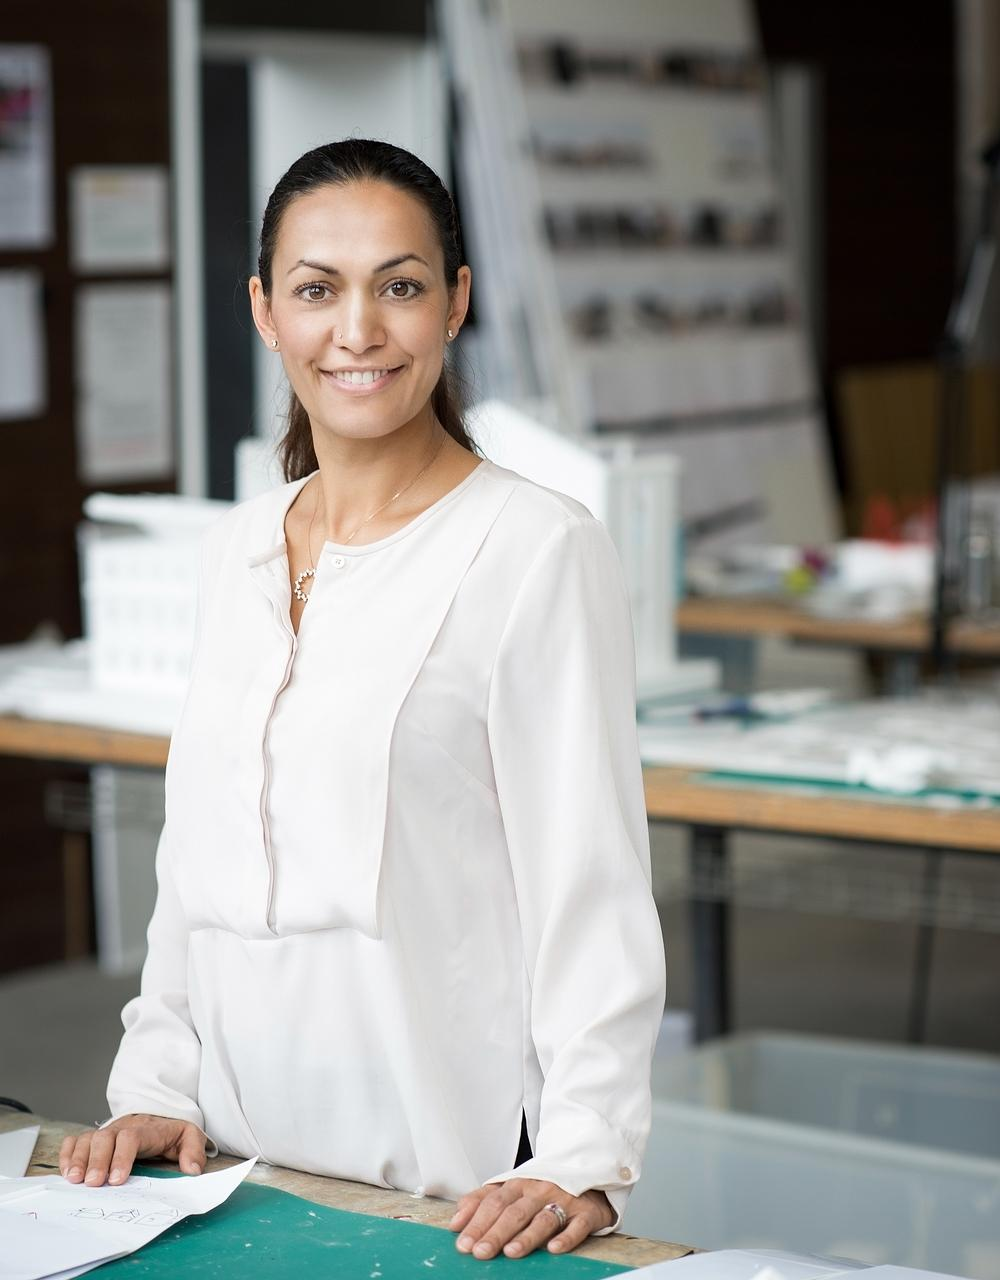 Sheela Maini Søgaard joined BIG in 2008 and was made chief executive in 2009 / Photo: Flemming Leitorp